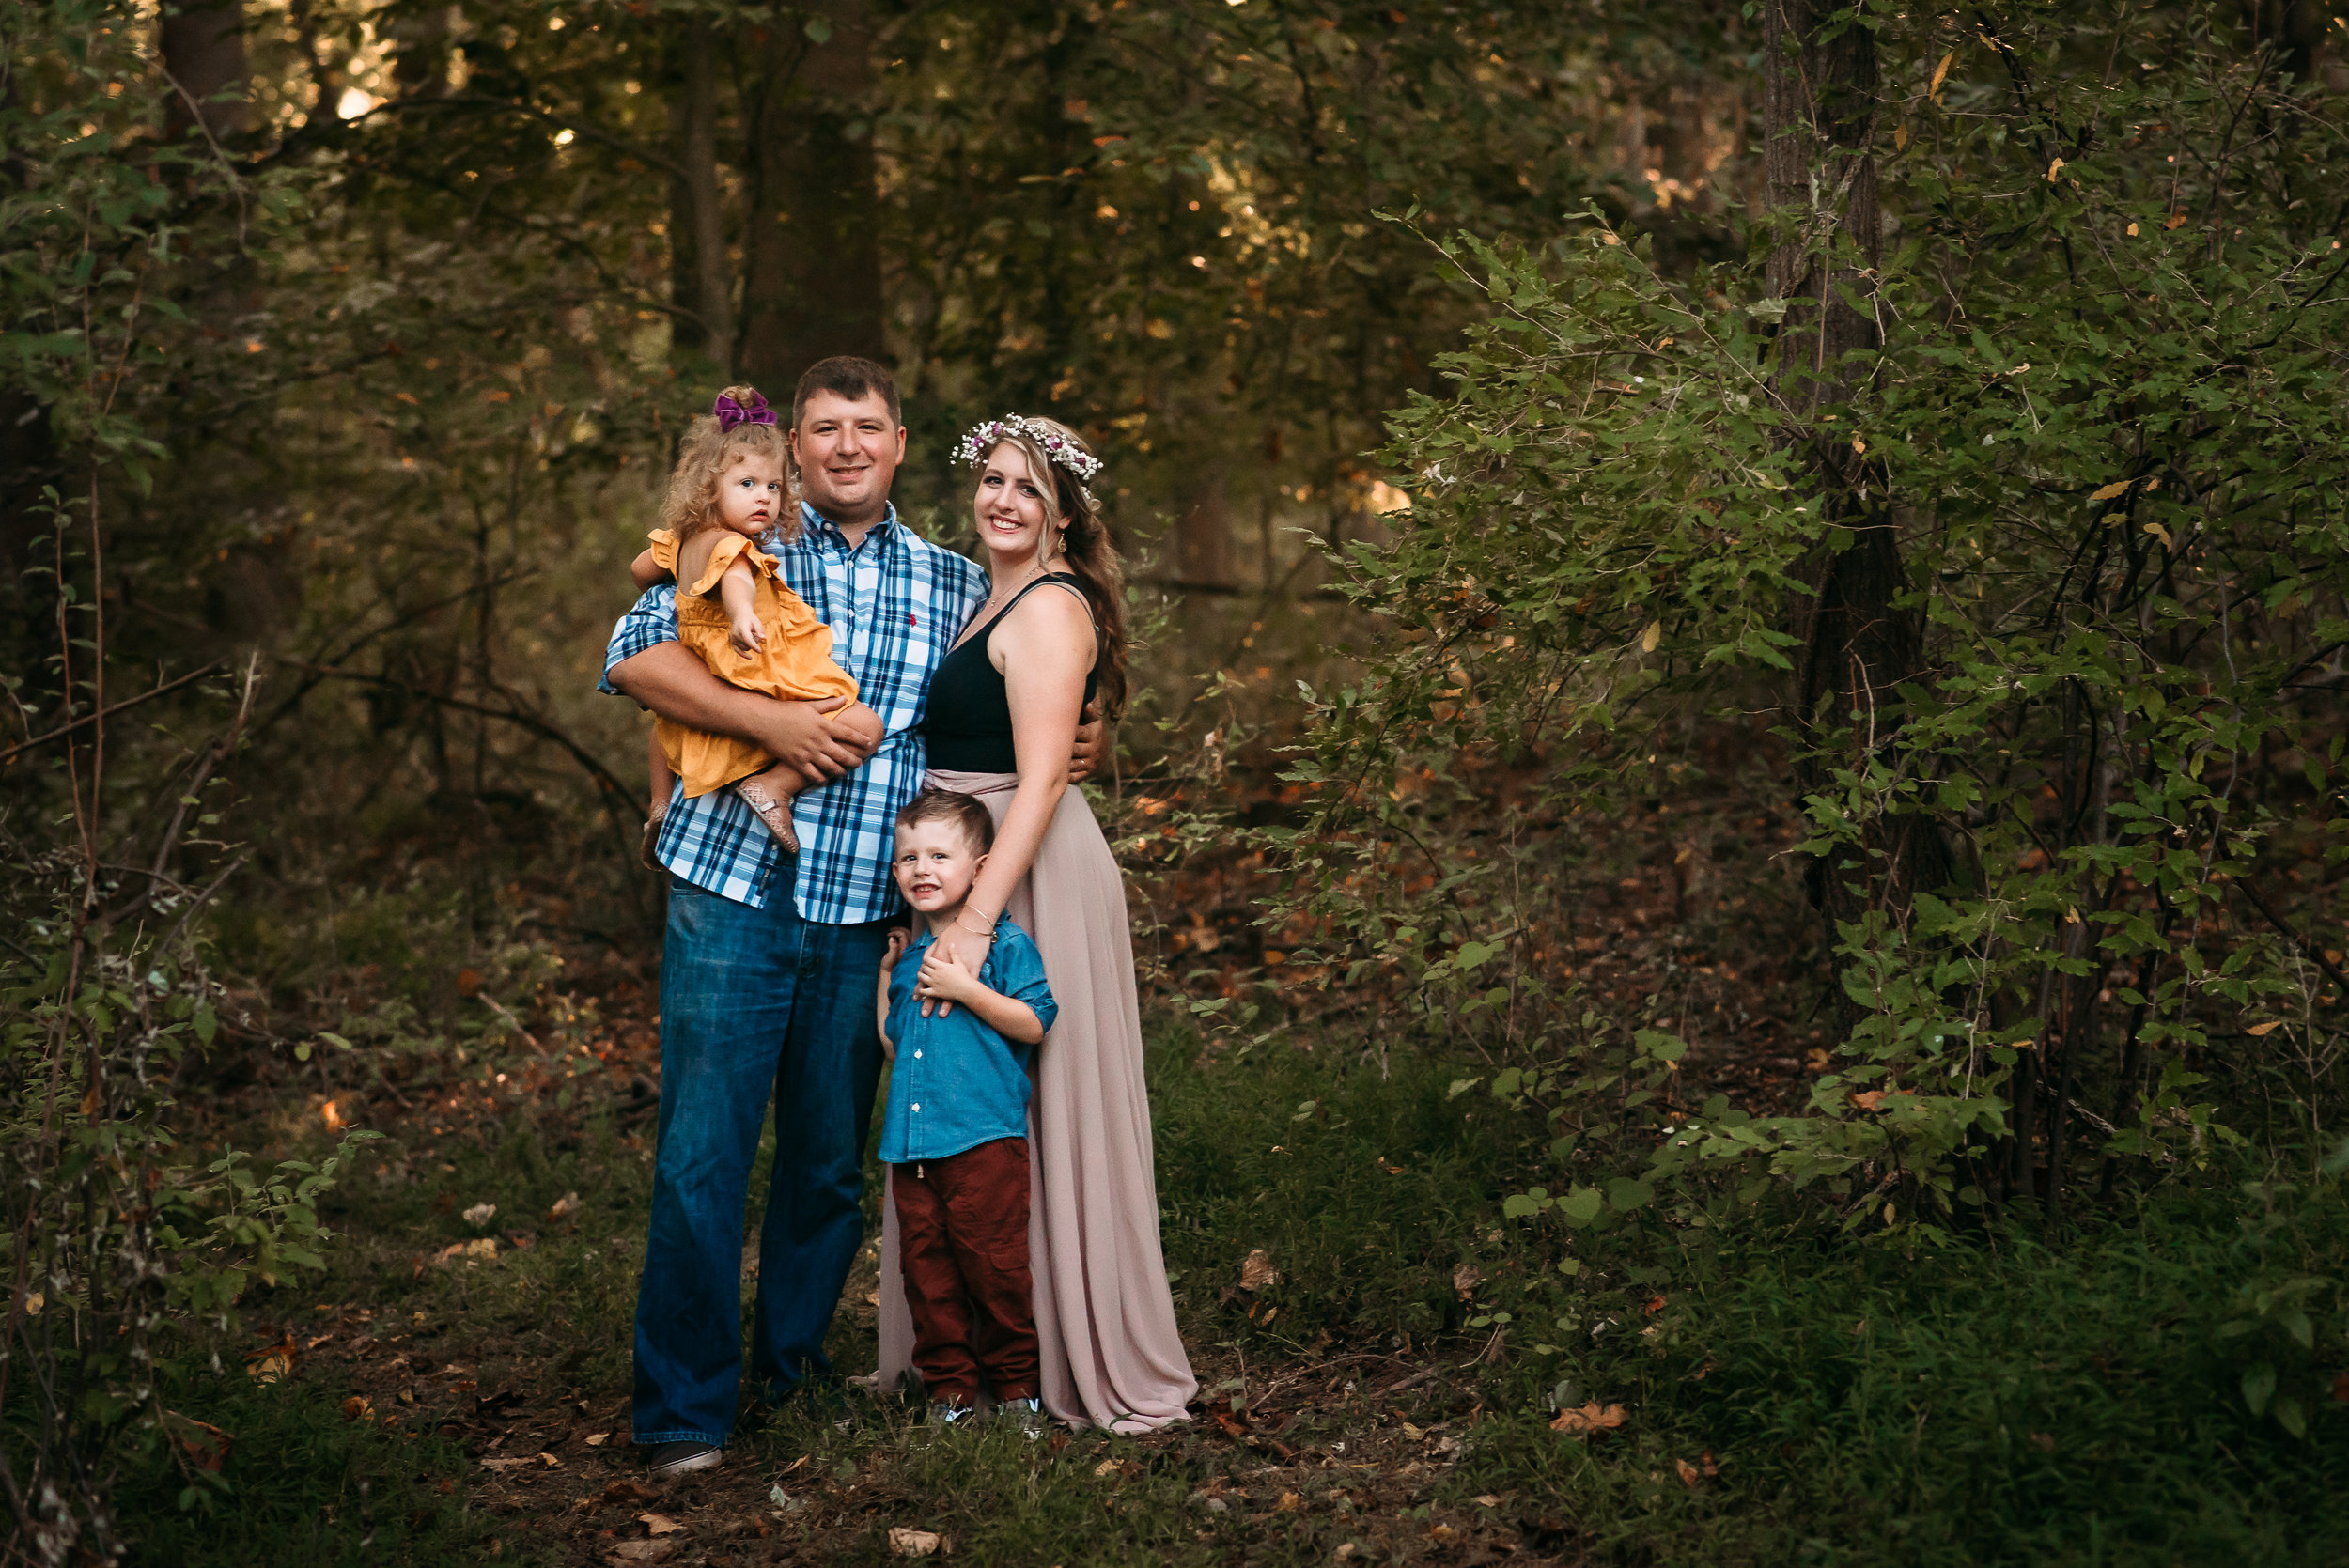 Celebrating life with our first family portrait session with the talented Jessica Fenfert Photography!